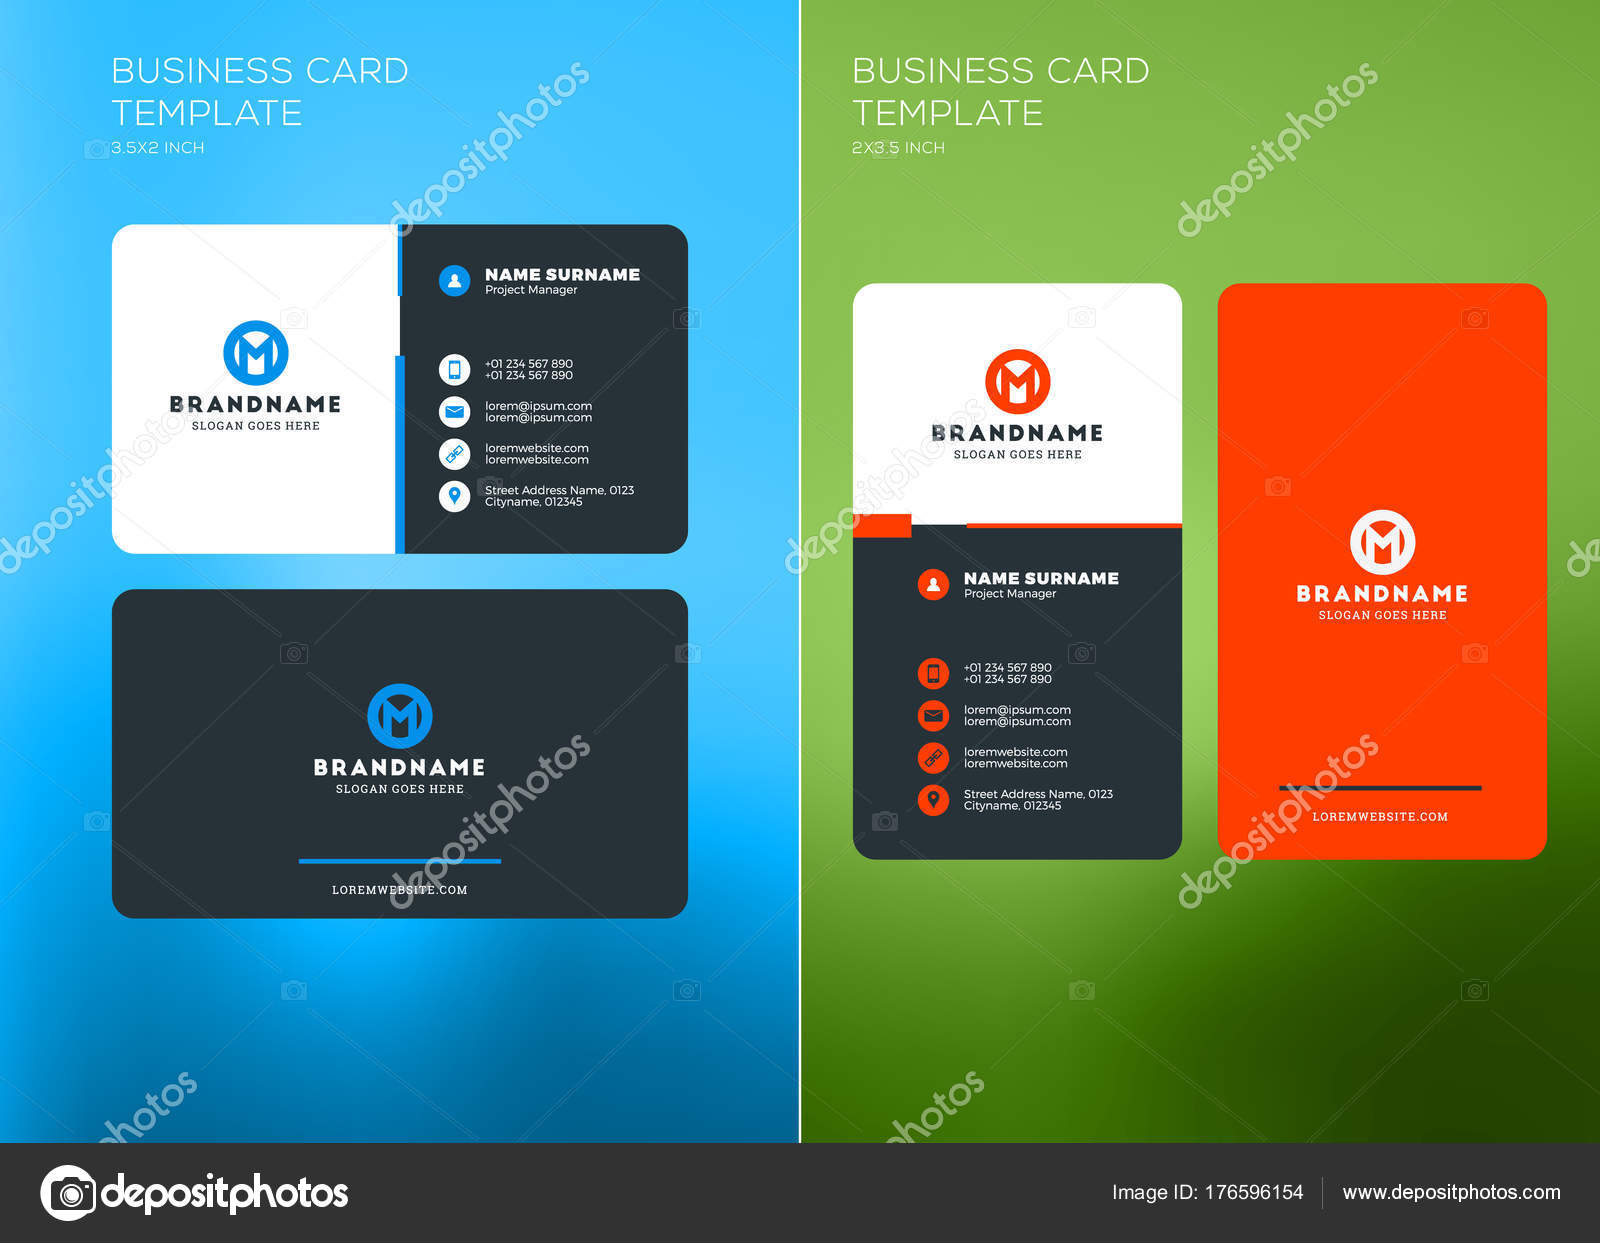 Corporate business card print template vertical and horizontal corporate business card print template vertical and horizontal business card templates vector illustration reheart Image collections